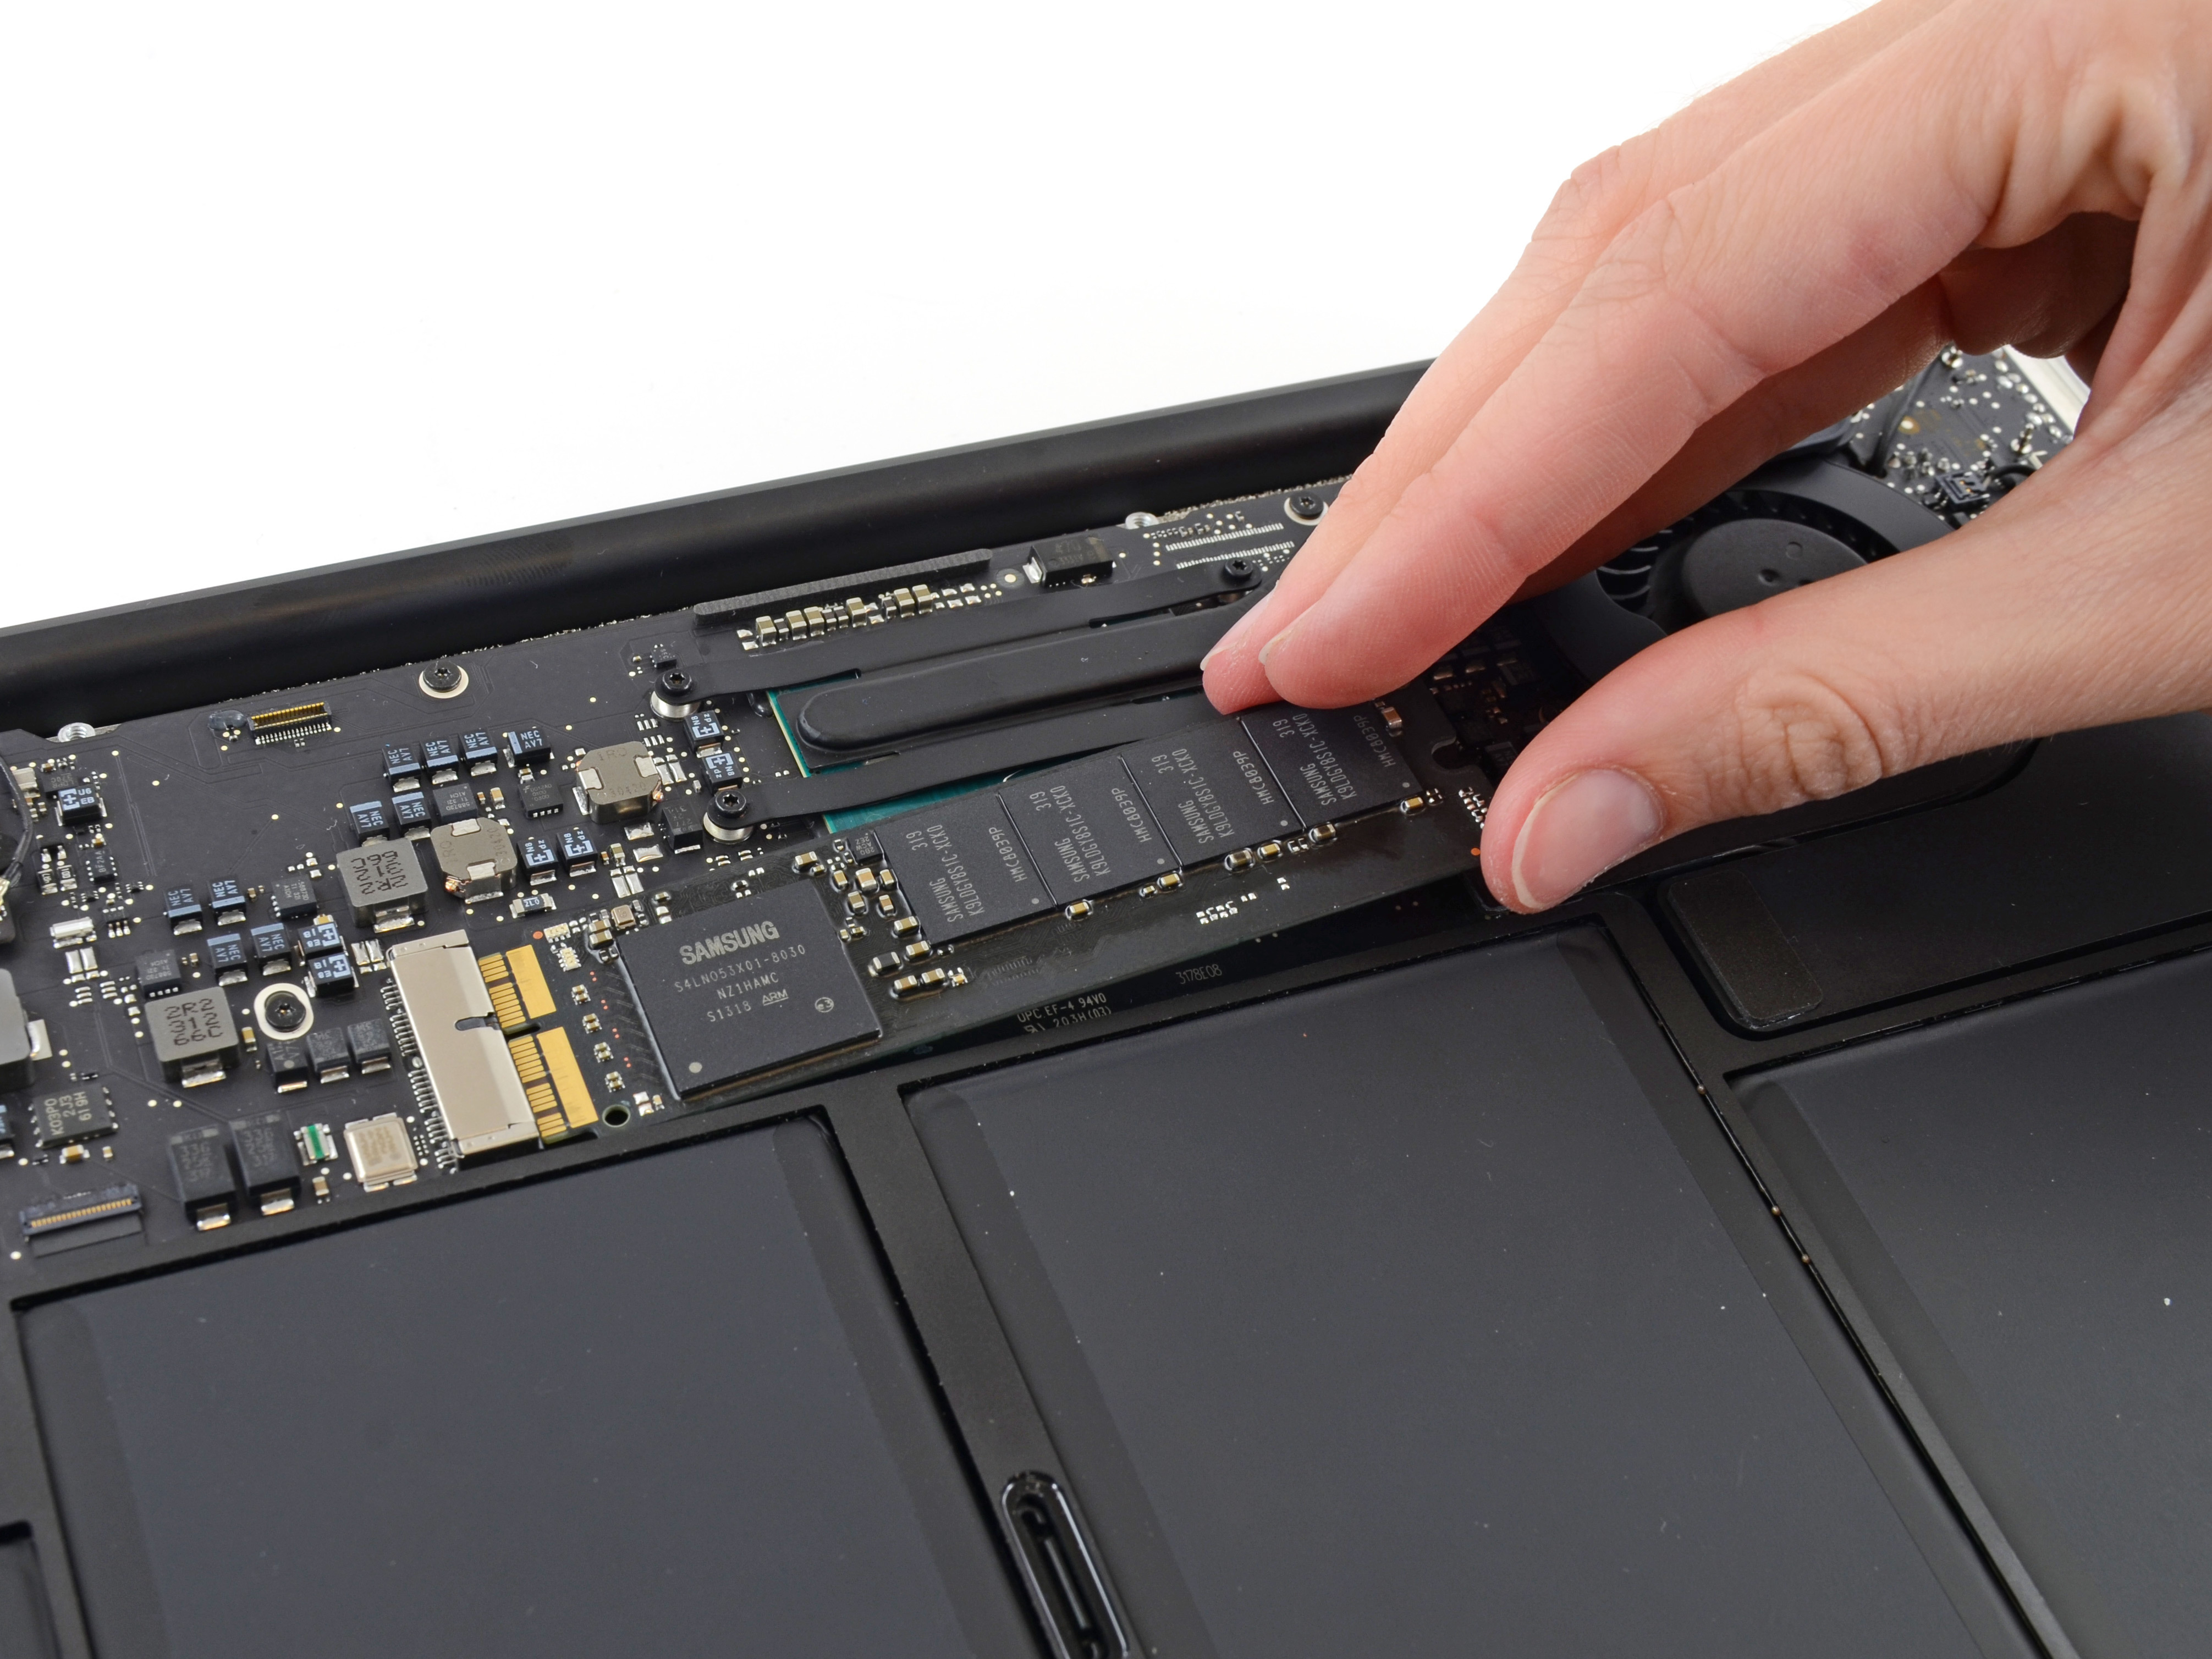 Macbook Air 13 Early 2015 Ssd Replacement Ifixit Repair Guide Free Download Electronic Workbench 512 Full Version